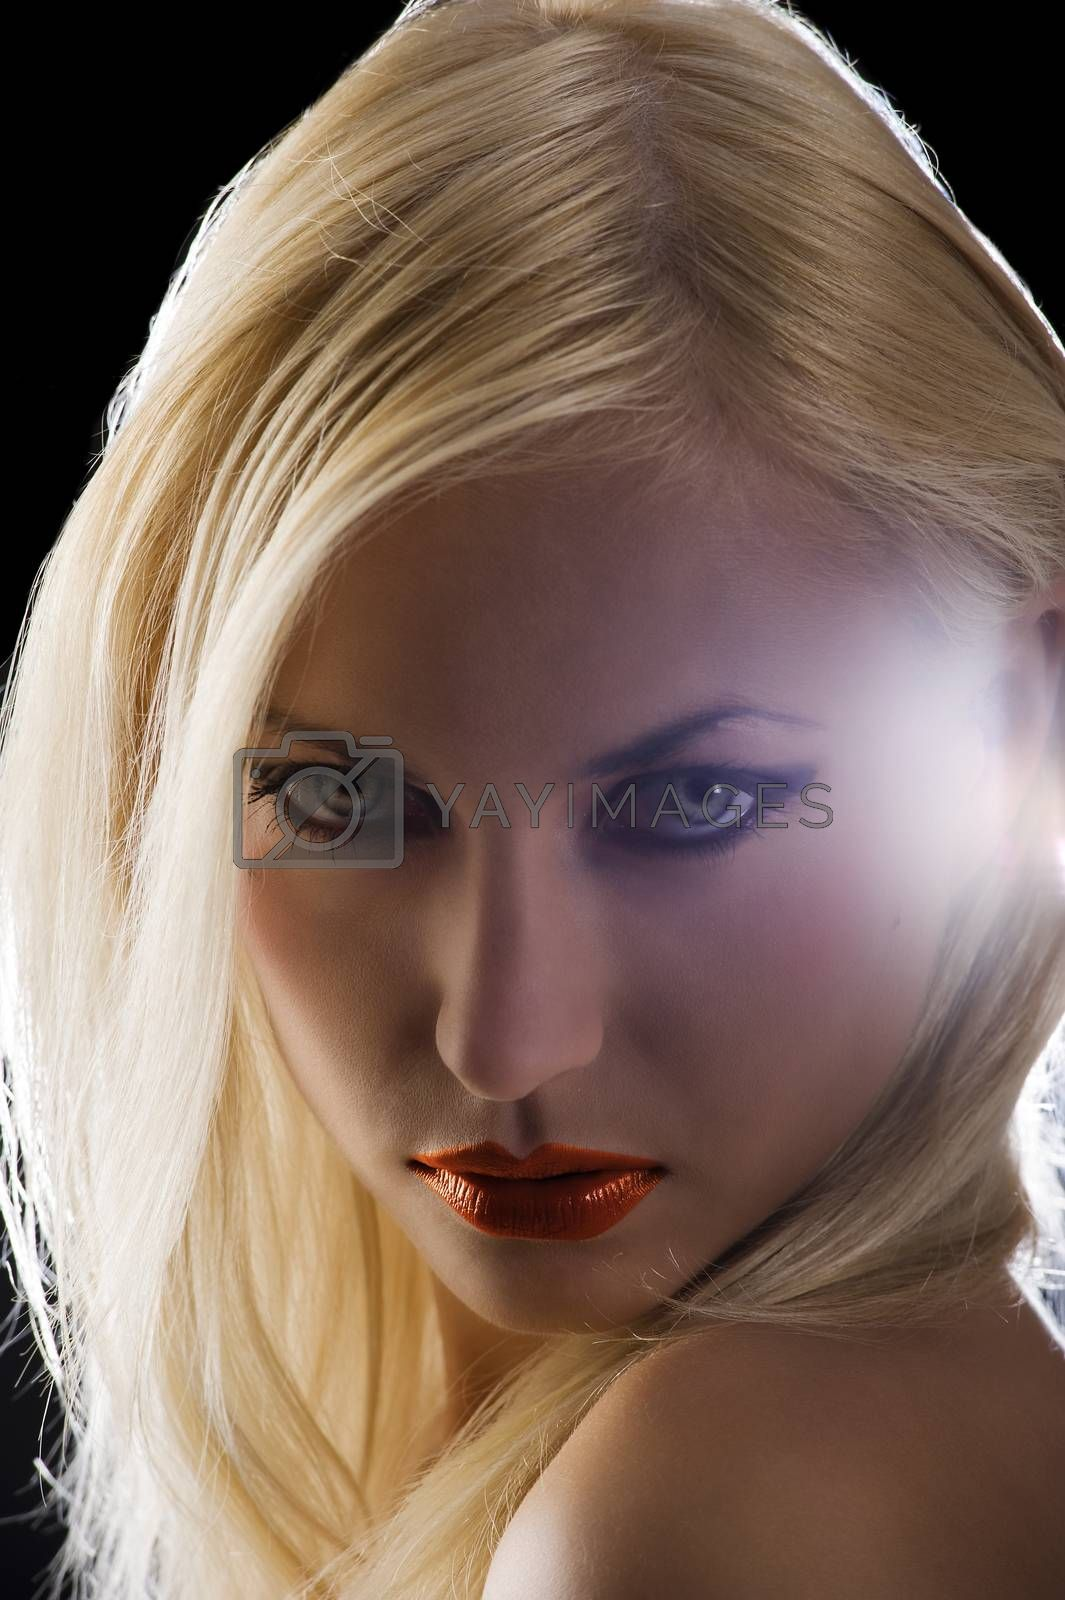 Royalty free image of strong eyes by fotoCD